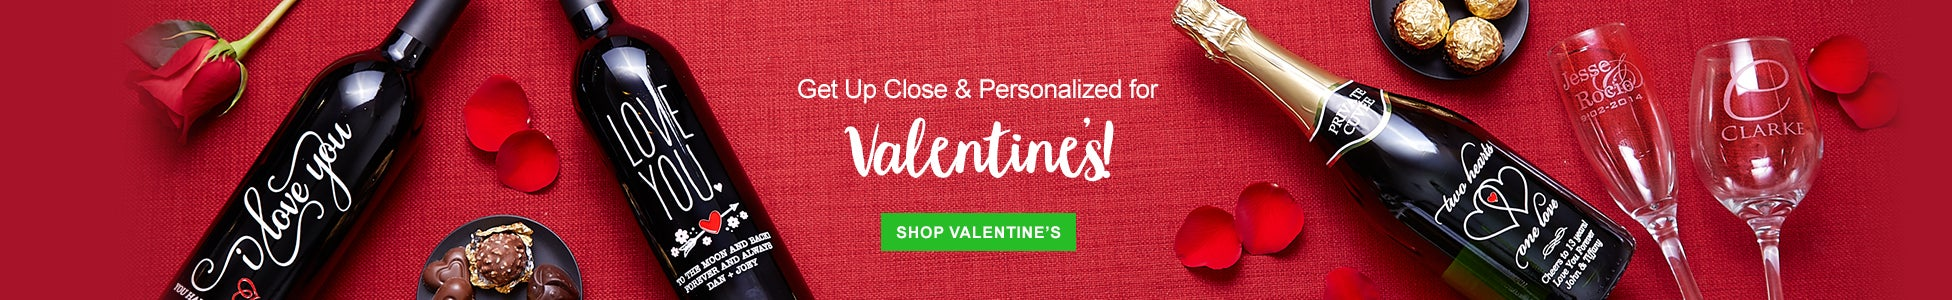 Get Up close & Personalized for Valentines